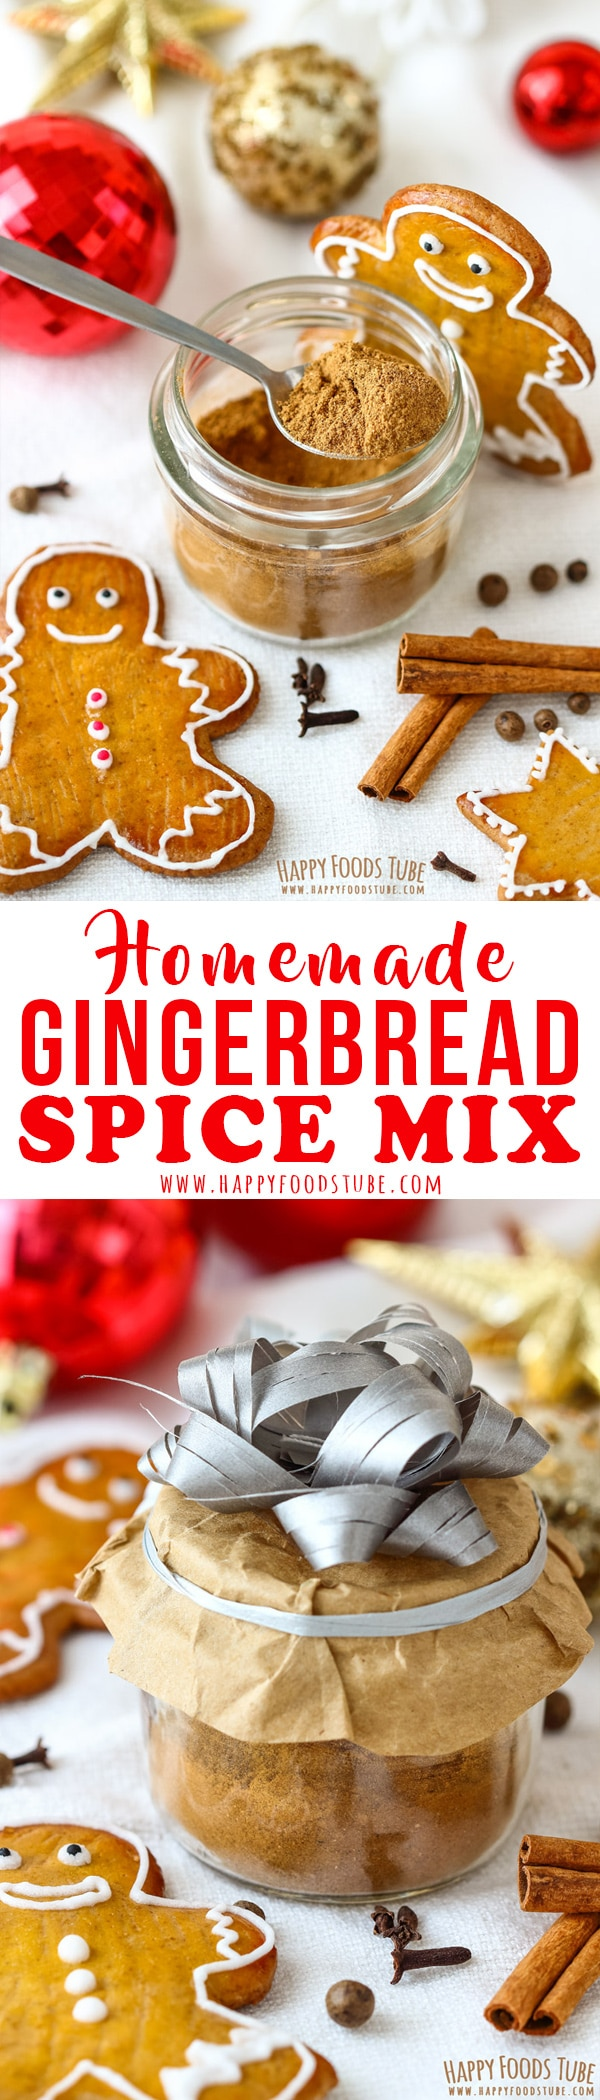 This homemade gingerbread spice mix is perfect for pancakes, muffins, quick breads or cookies. It also makes a great Christmas gift. #gingerbread #spicemix #christmas #holidays #recipe #spices #giftideas